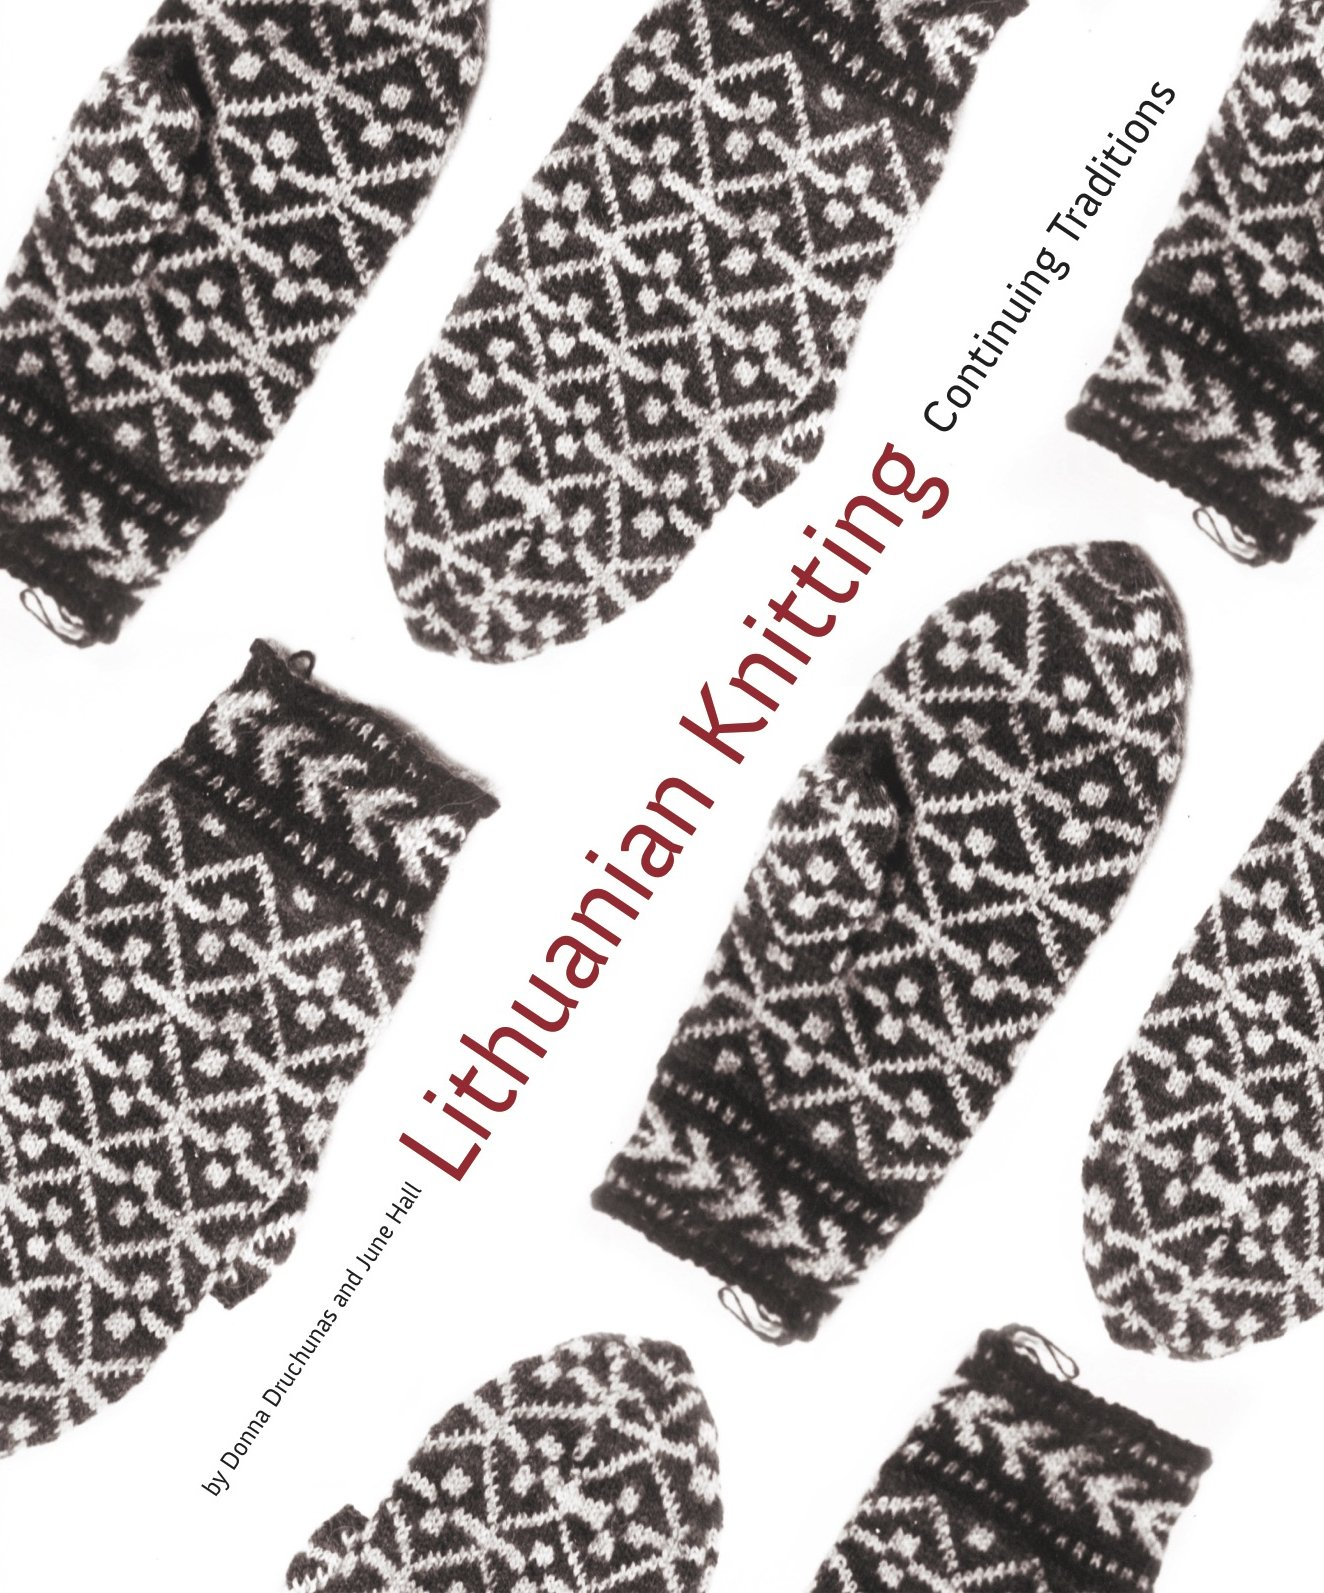 Lithuanian Knitting: Continuing Traditions: Donna Druchunas, June L ...